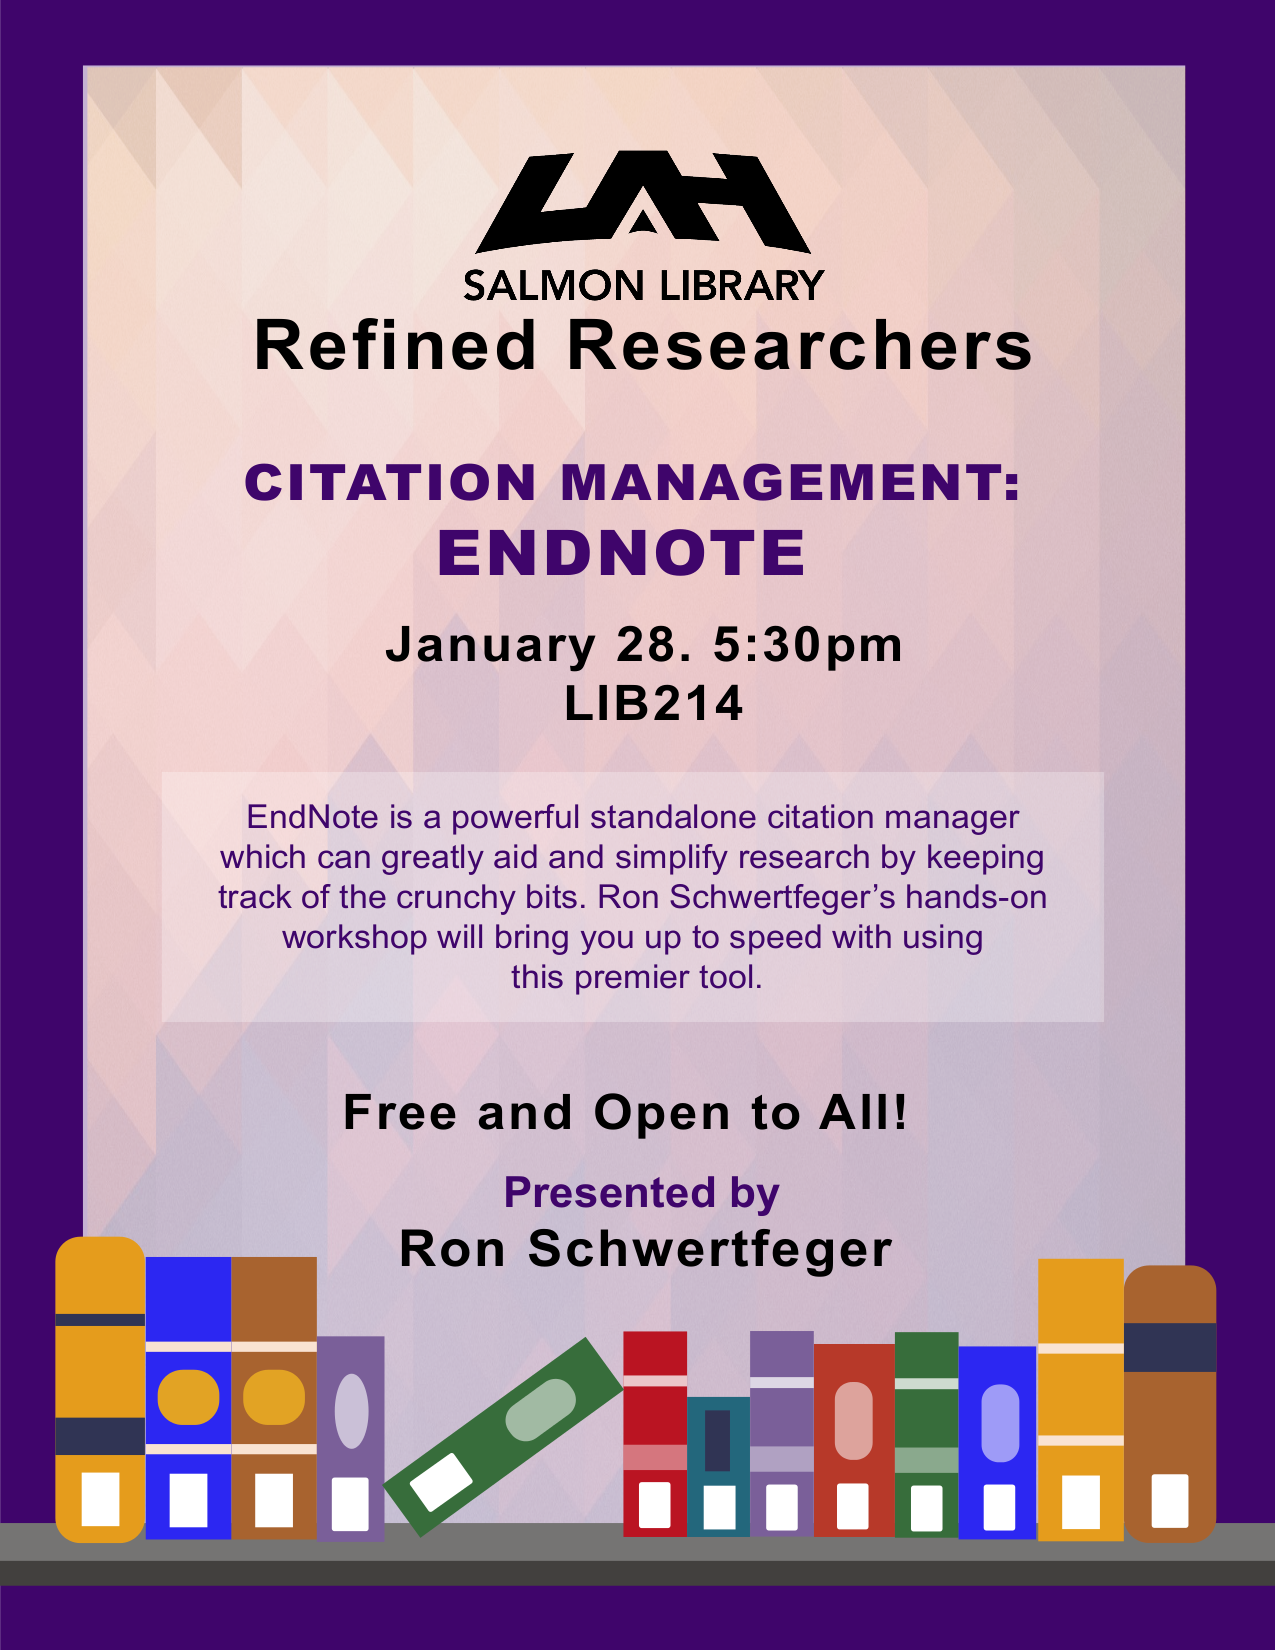 Flyer For Endnote Presentation, January 28, 5:30 Pm, Salmon Library Room